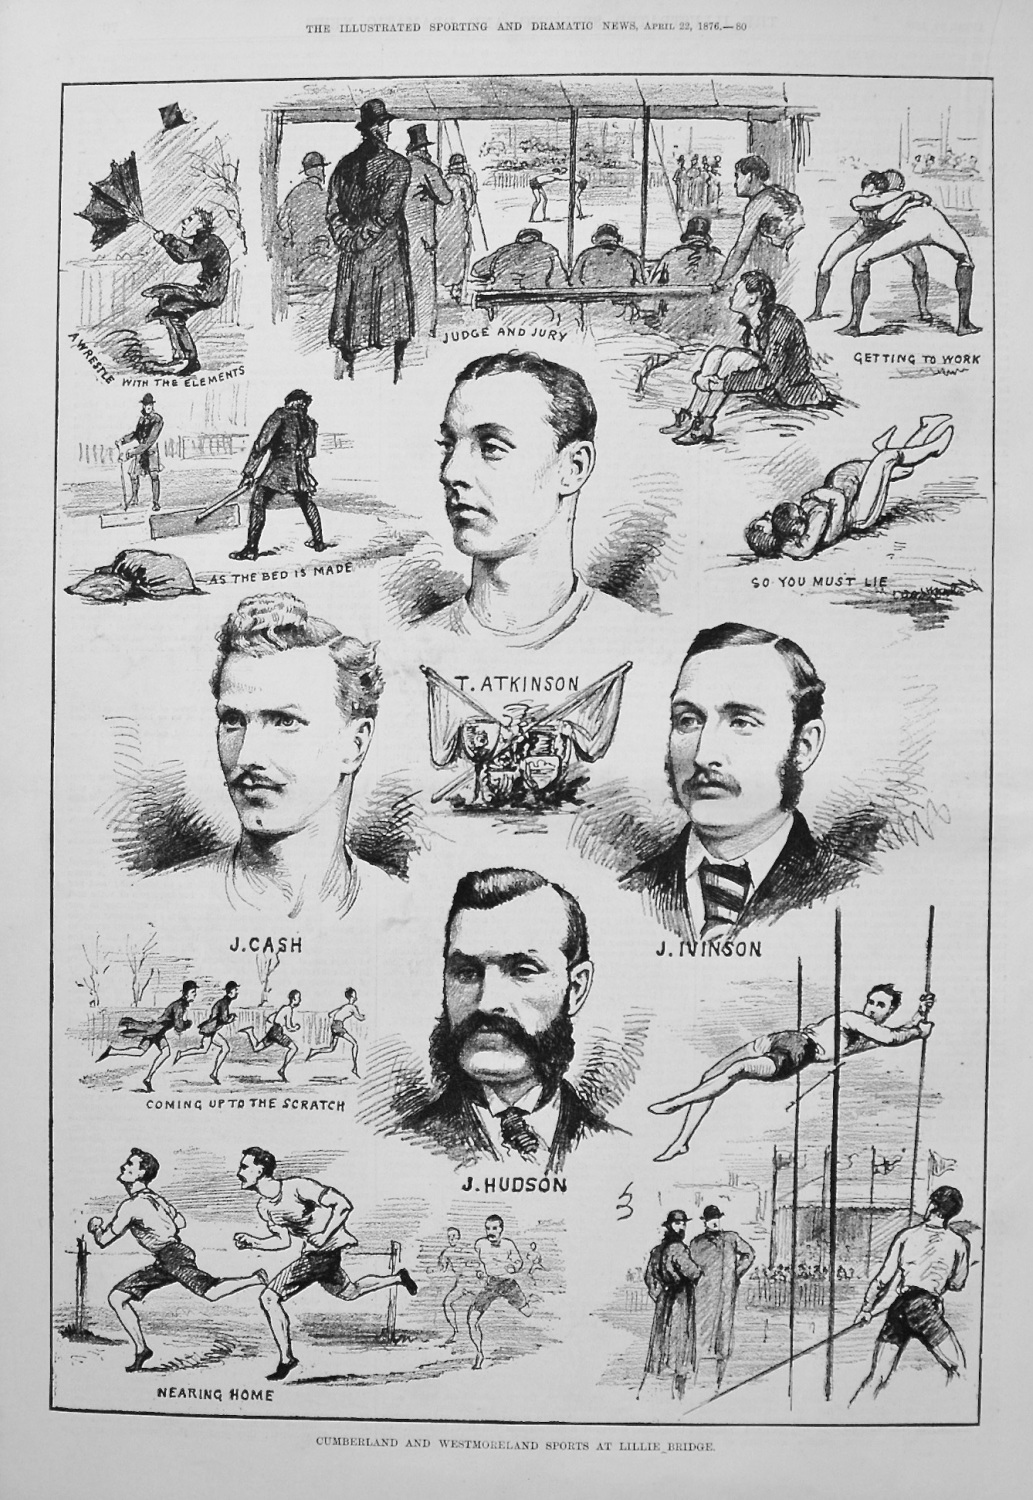 Cumberland and Westmoreland Sports at Lillie Bridge. 1876